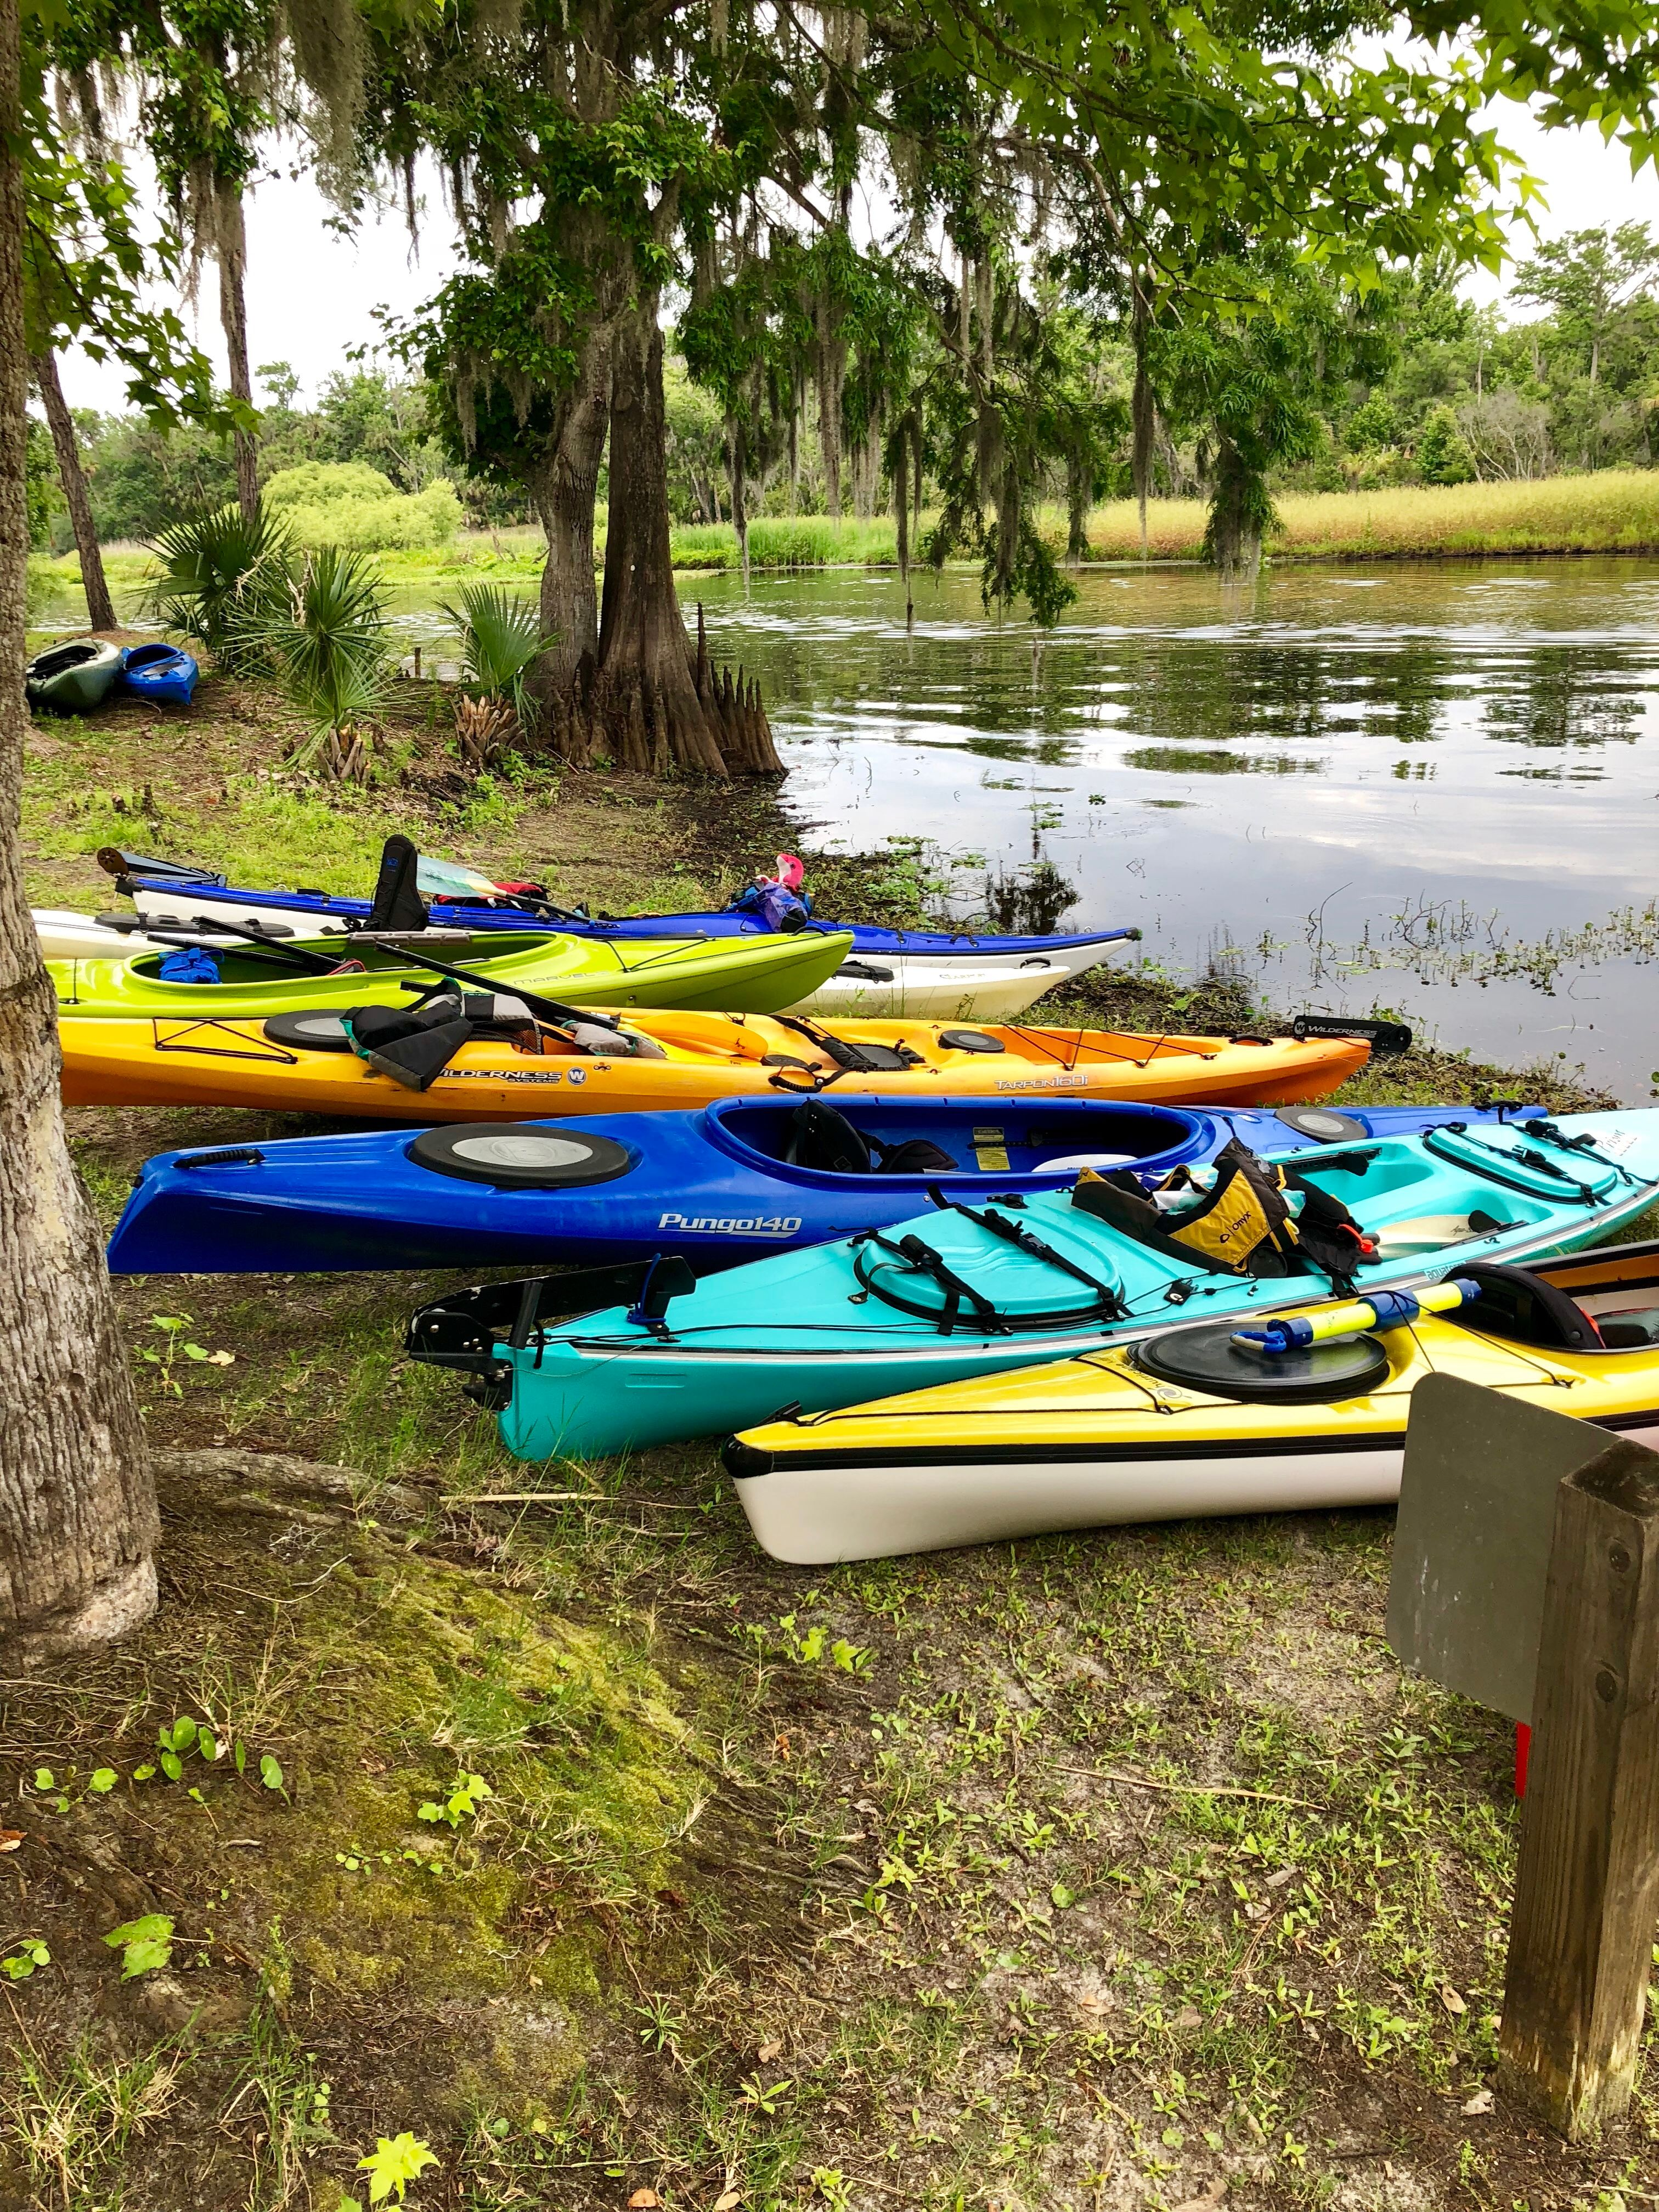 Upcoming events | Simply Laidback Adventurers, Campers and Kayakers